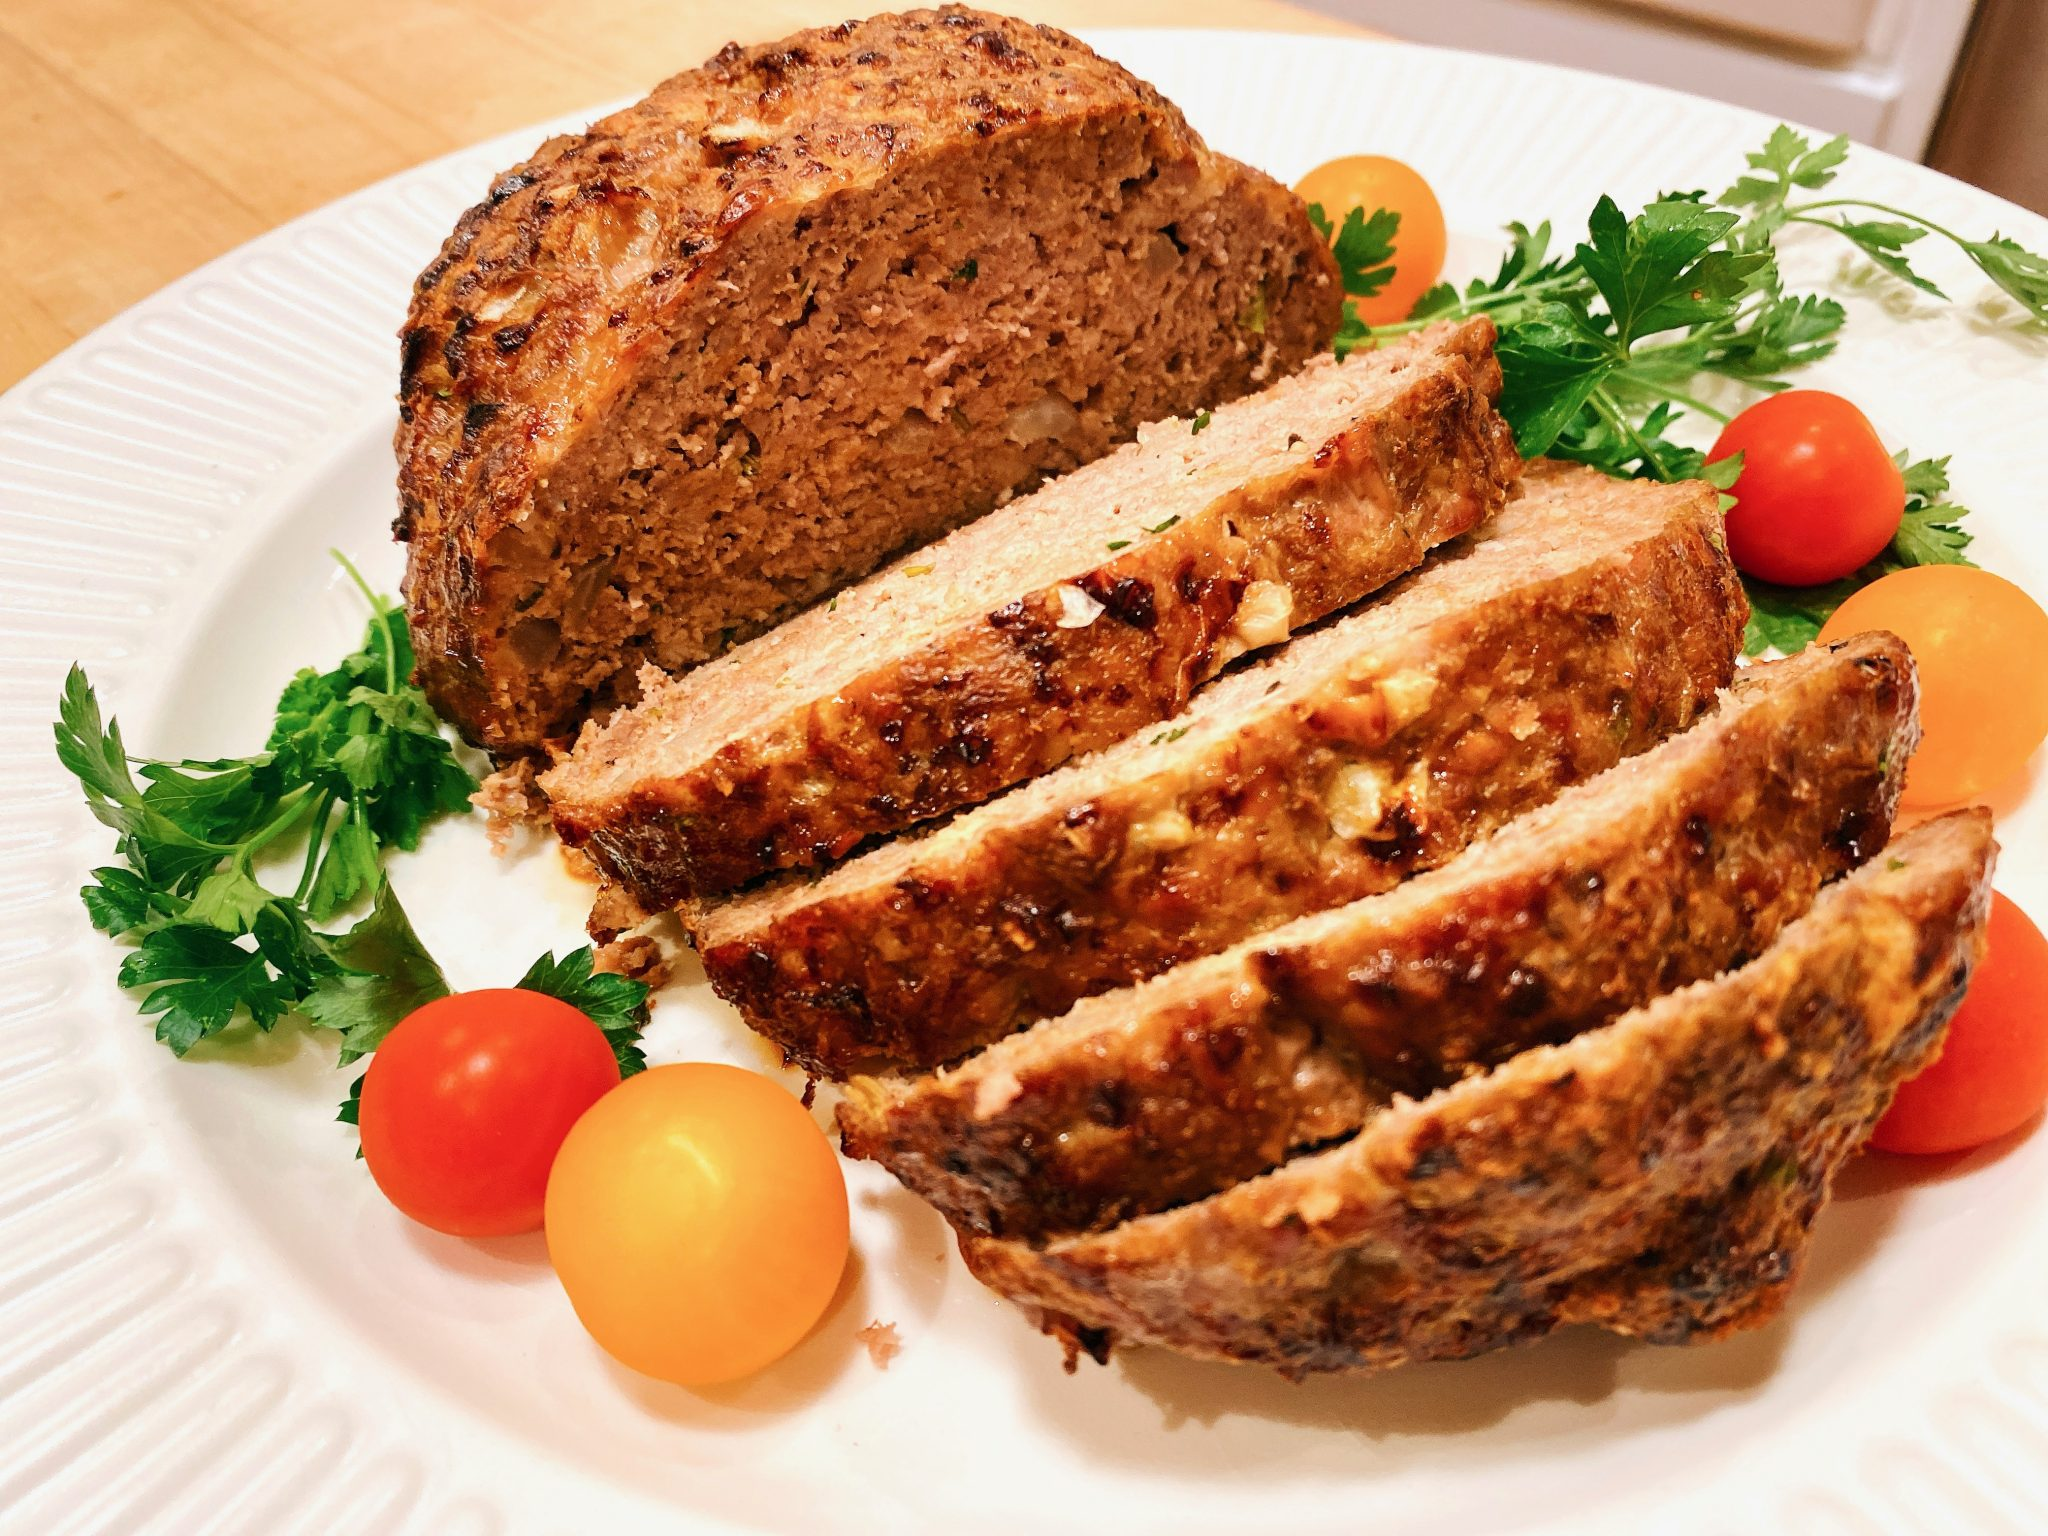 Updated Italian Meatloaf Recipe with All-Natural Ingredients